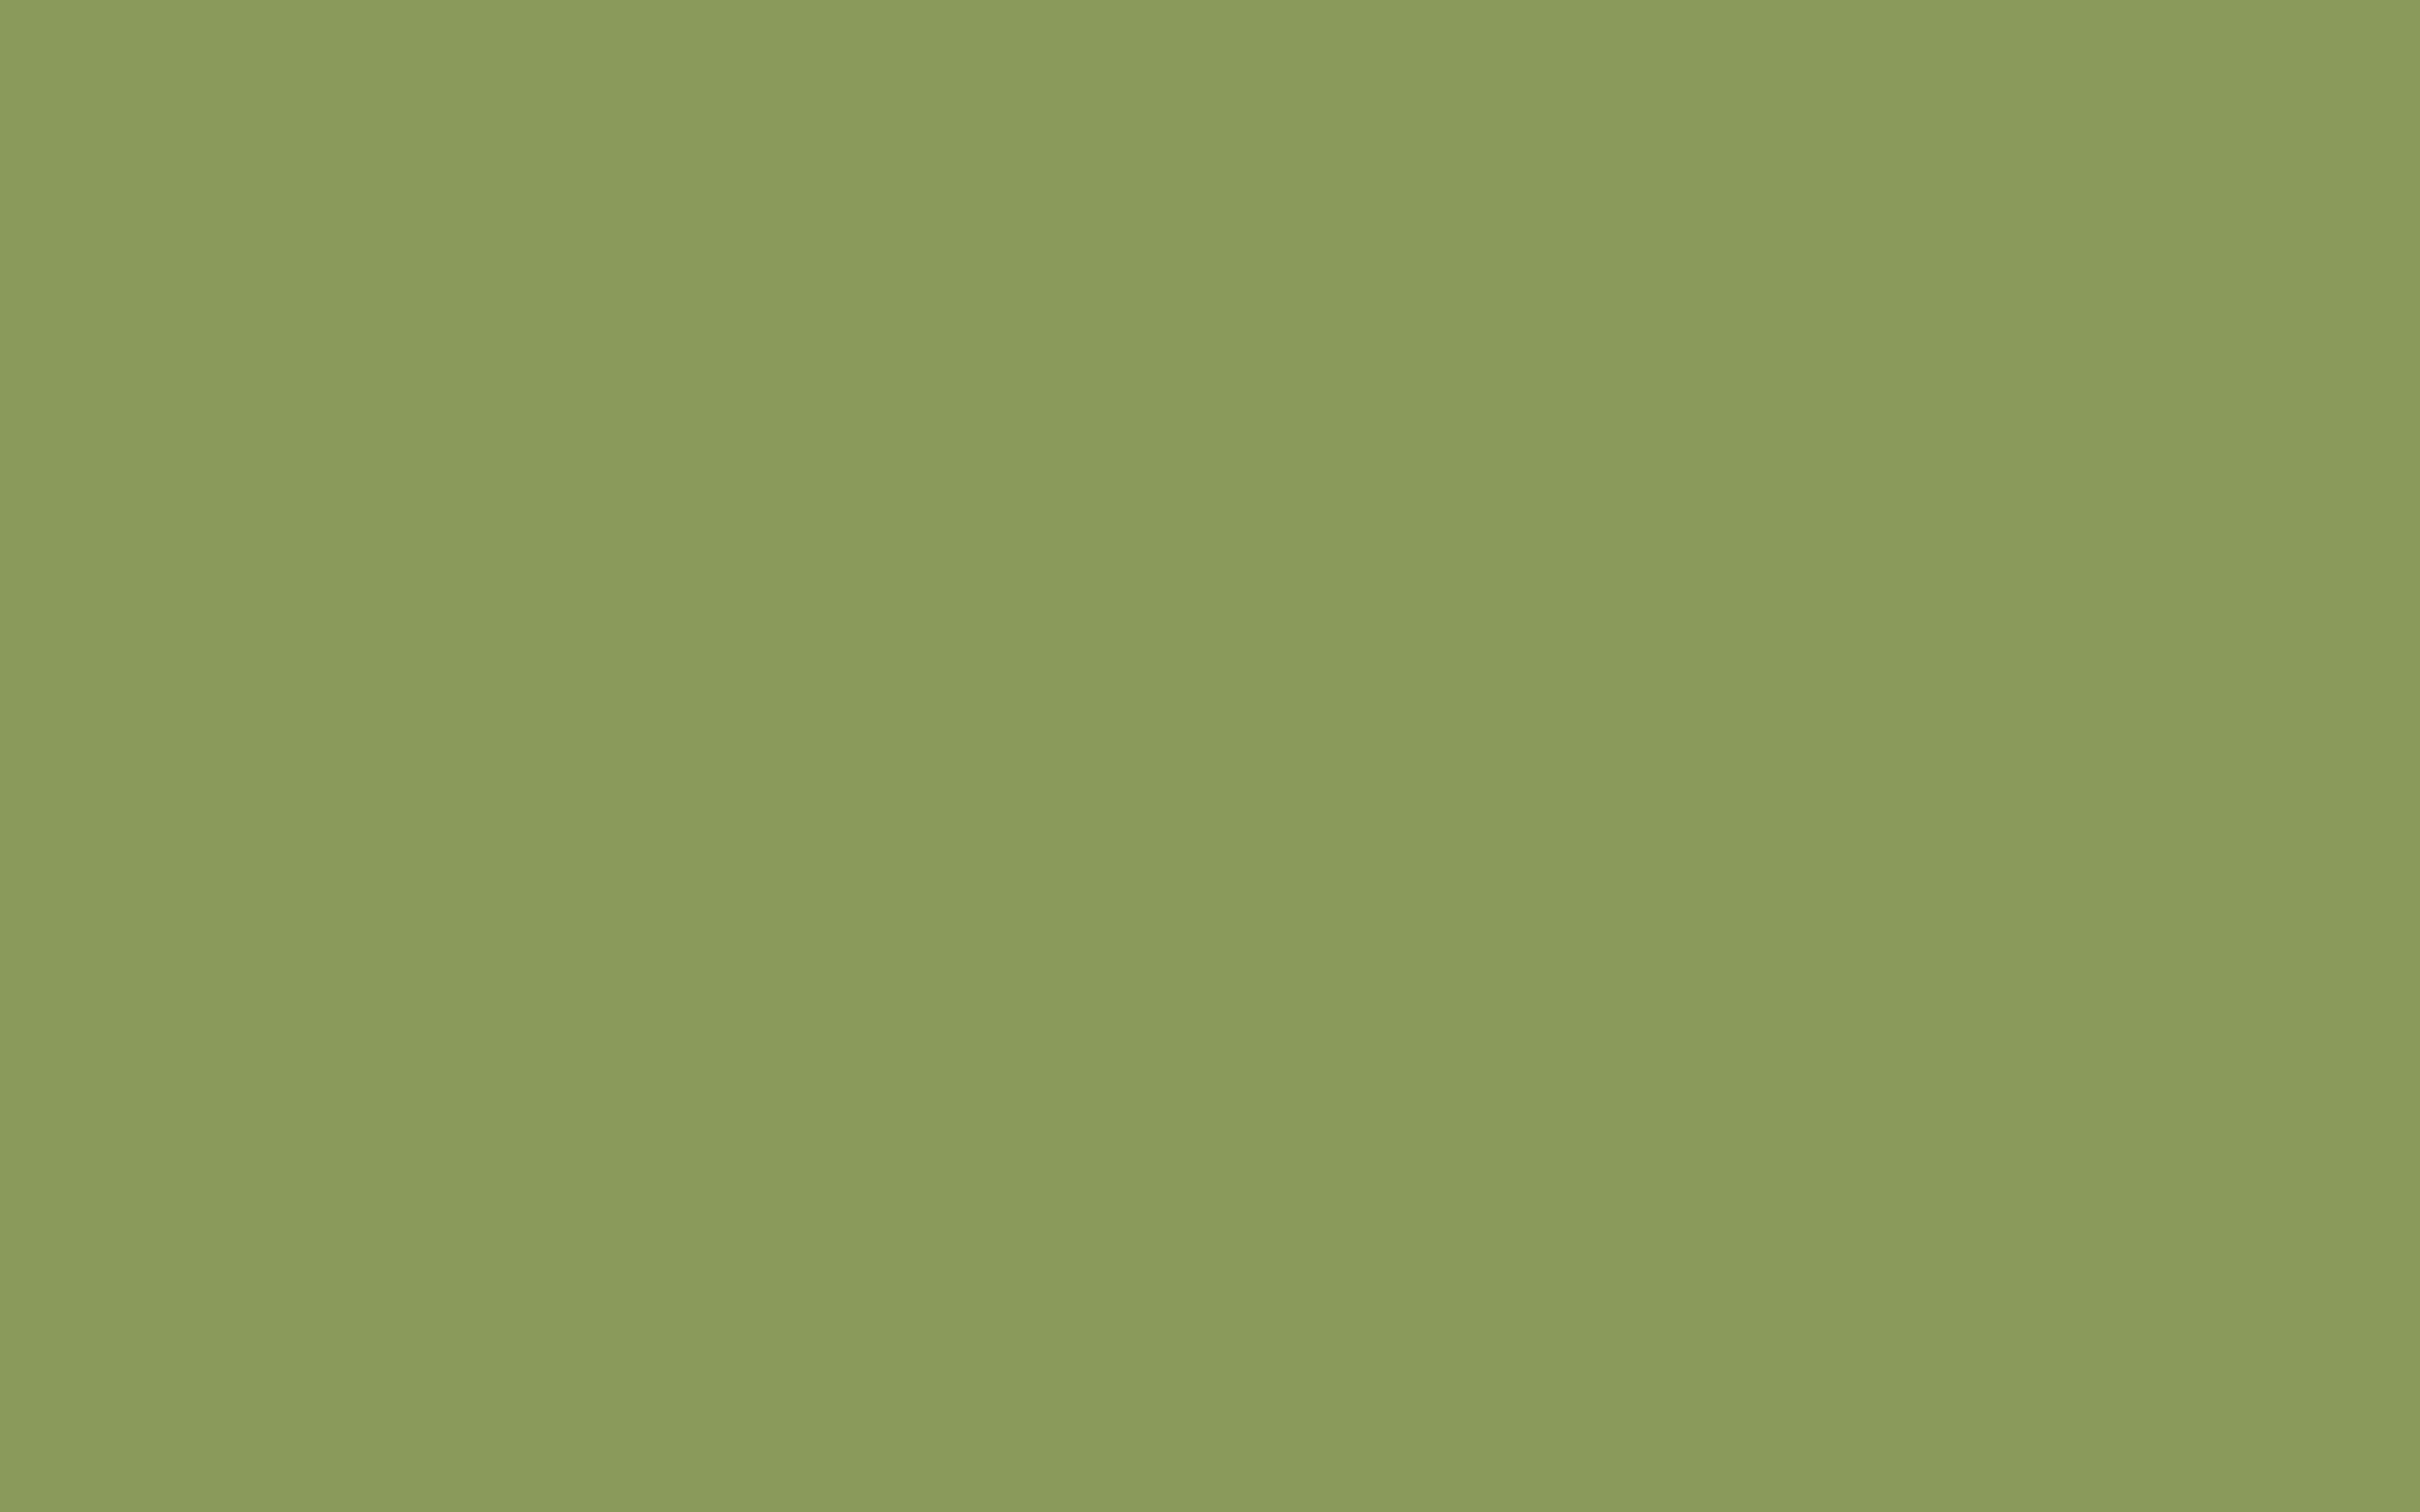 2560x1600 Moss Green Solid Color Background